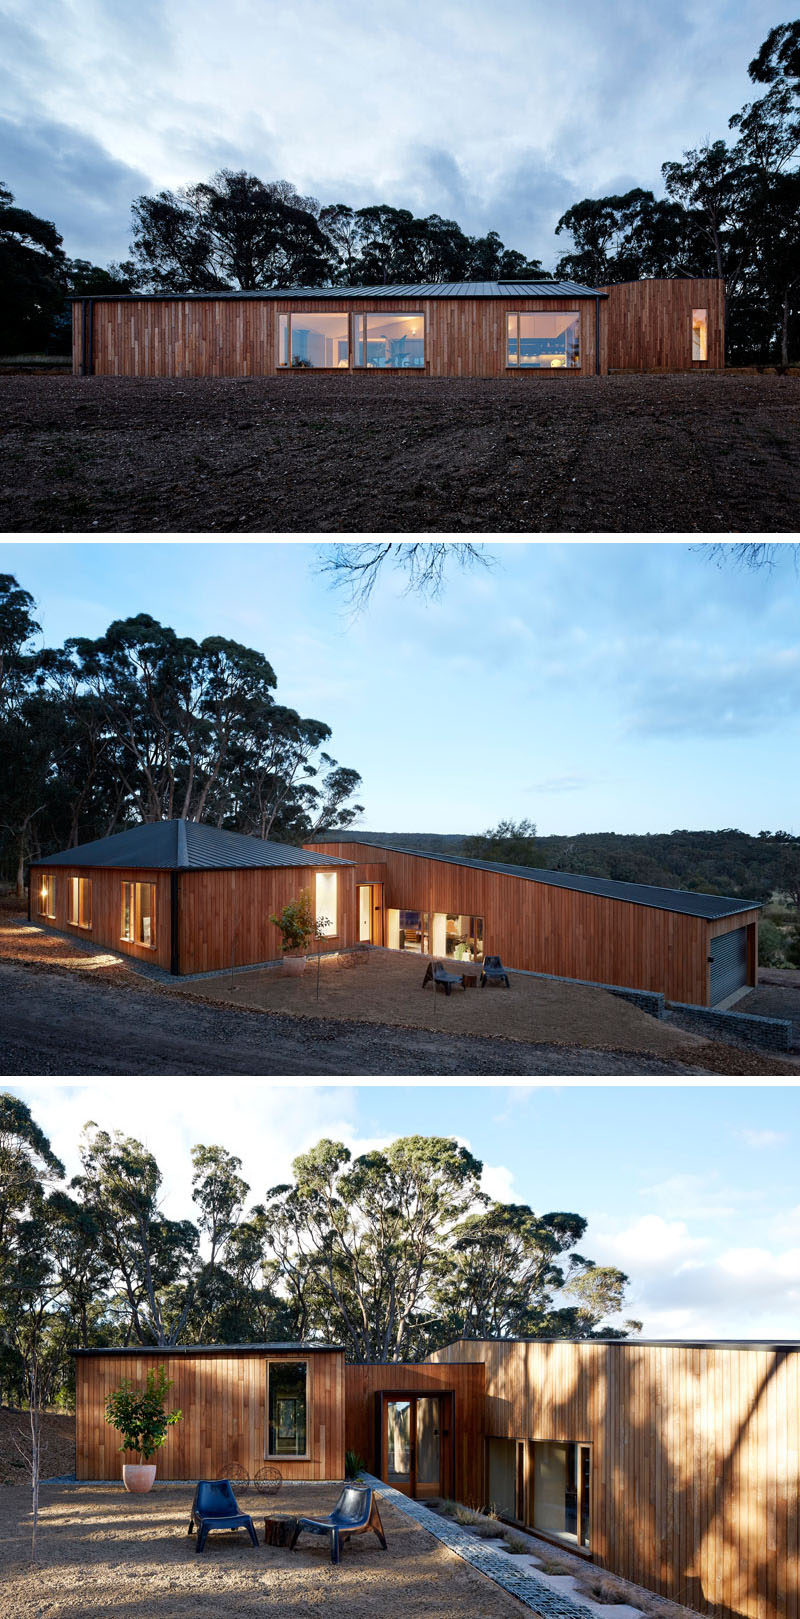 Moloney Architects have recently completed a new modern wood home in Invermay, Australia, that's named the 'Two Halves House', as the house is split with the social areas in one half and the sleeping areas in the other. #ModernHouse #ModernArchitecture